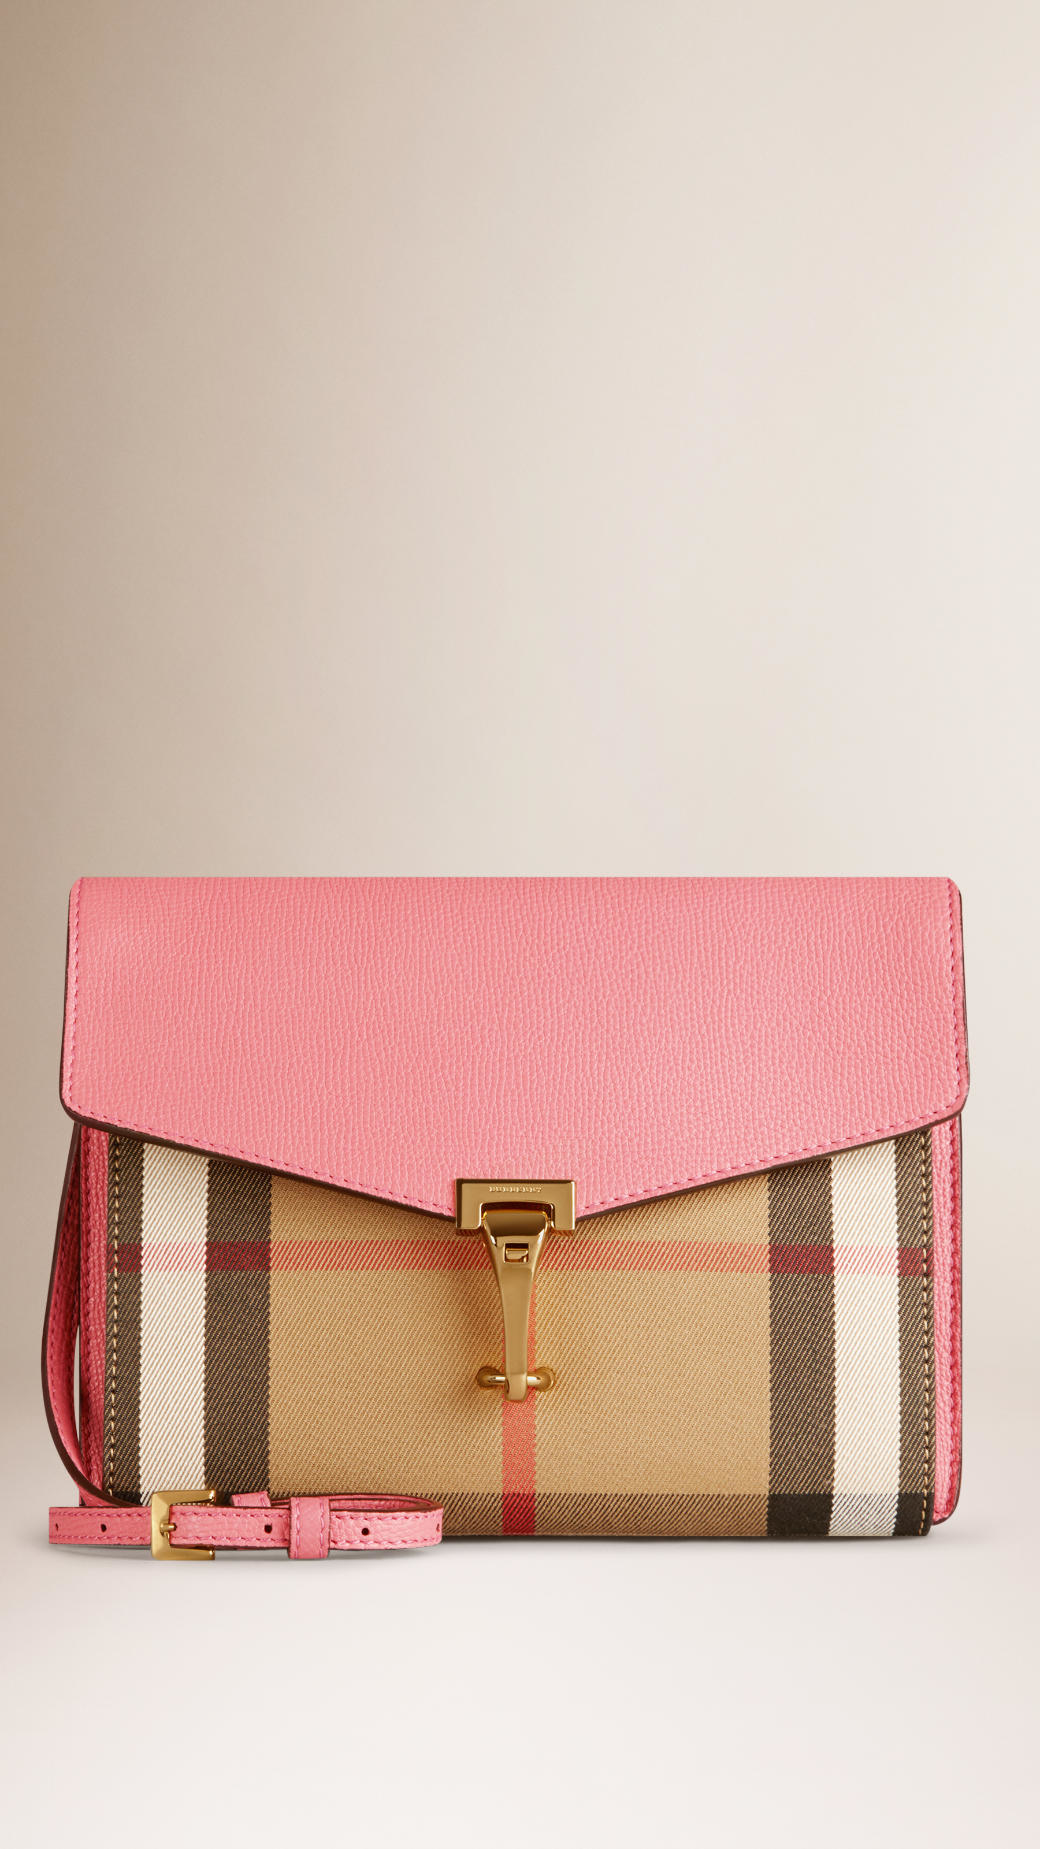 e4b06239a5ba ... Item No 4041271. Burberry Horseferry Check And Leather Clutch Ash Rose  Dusty Pink. Pink Burberry Purse Best Image Ccdbb. Burberry Pink Purse Best  Image ...